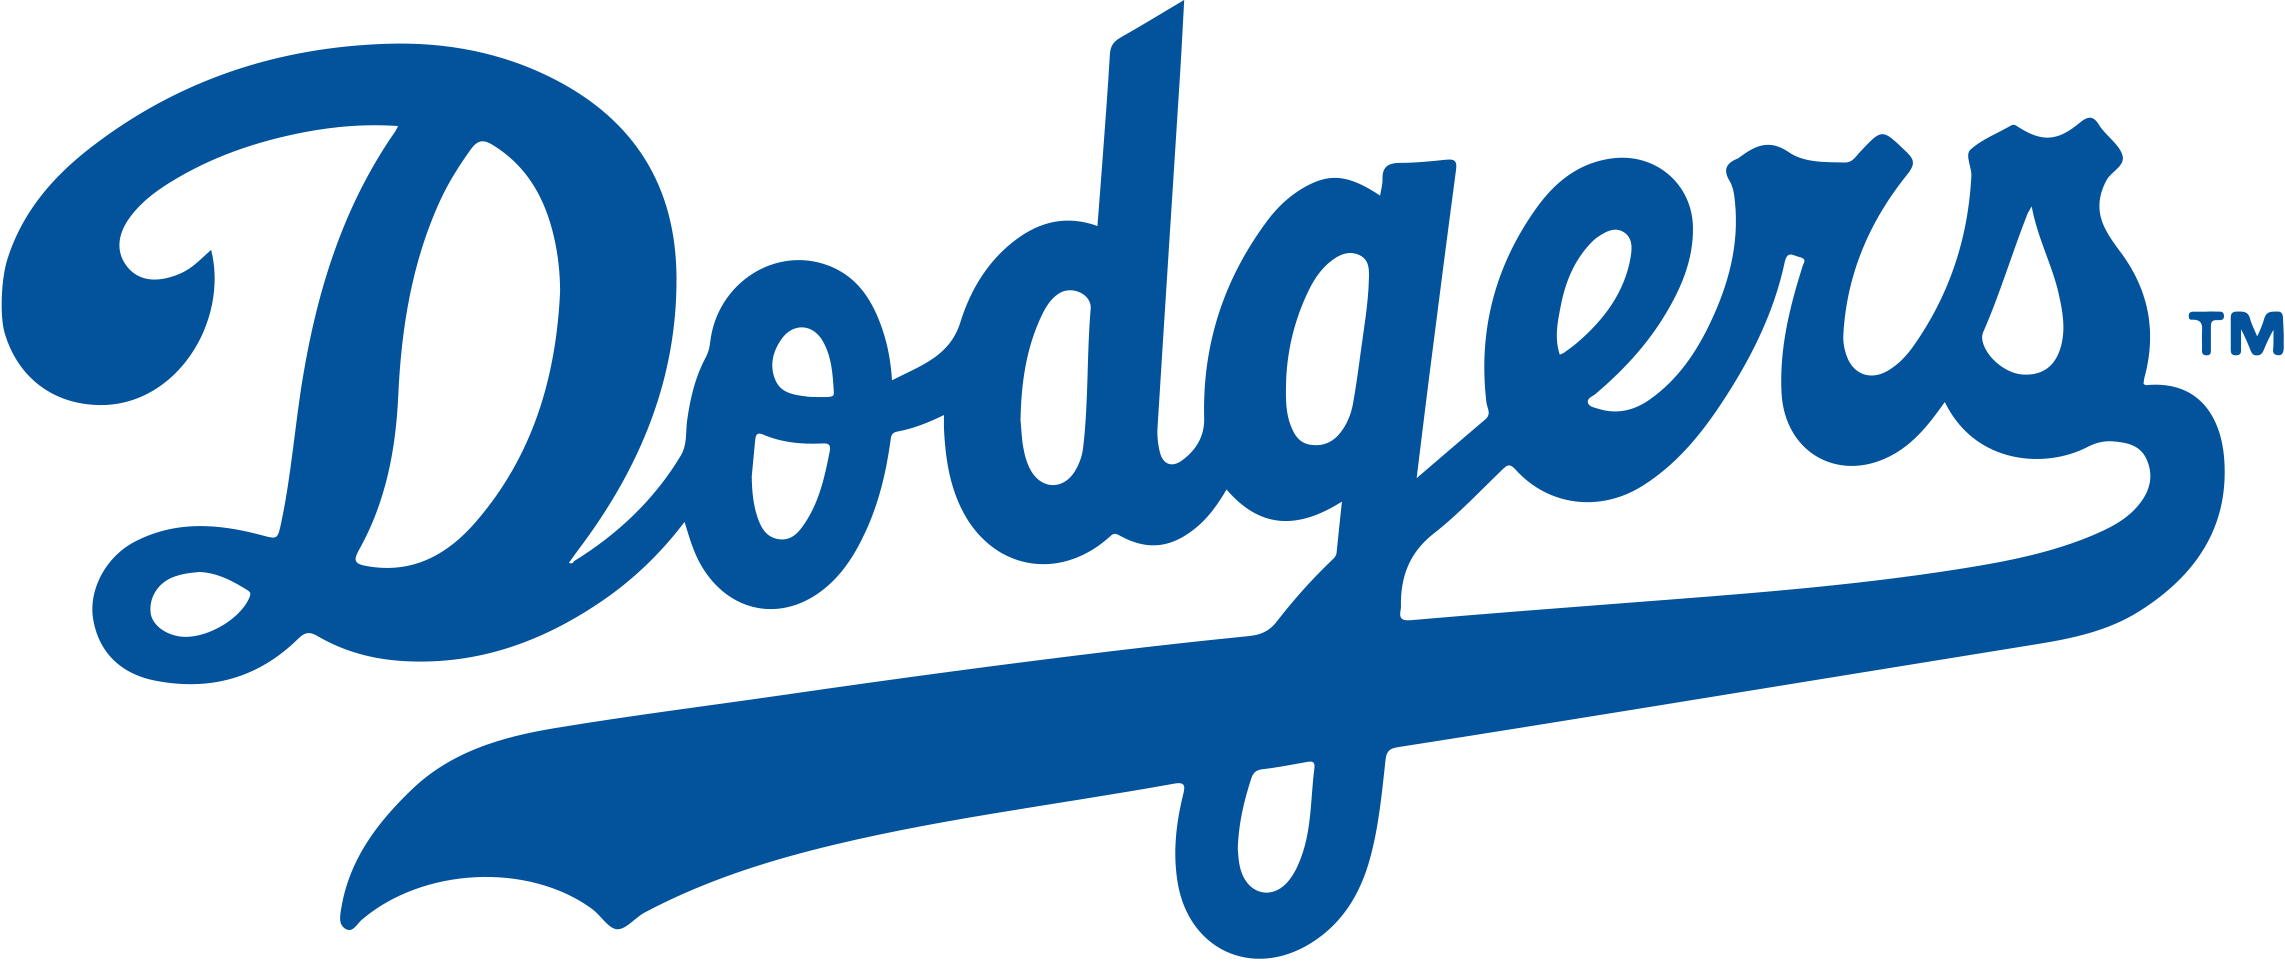 Dodgers drawing. Brooklyn los angeles chicago